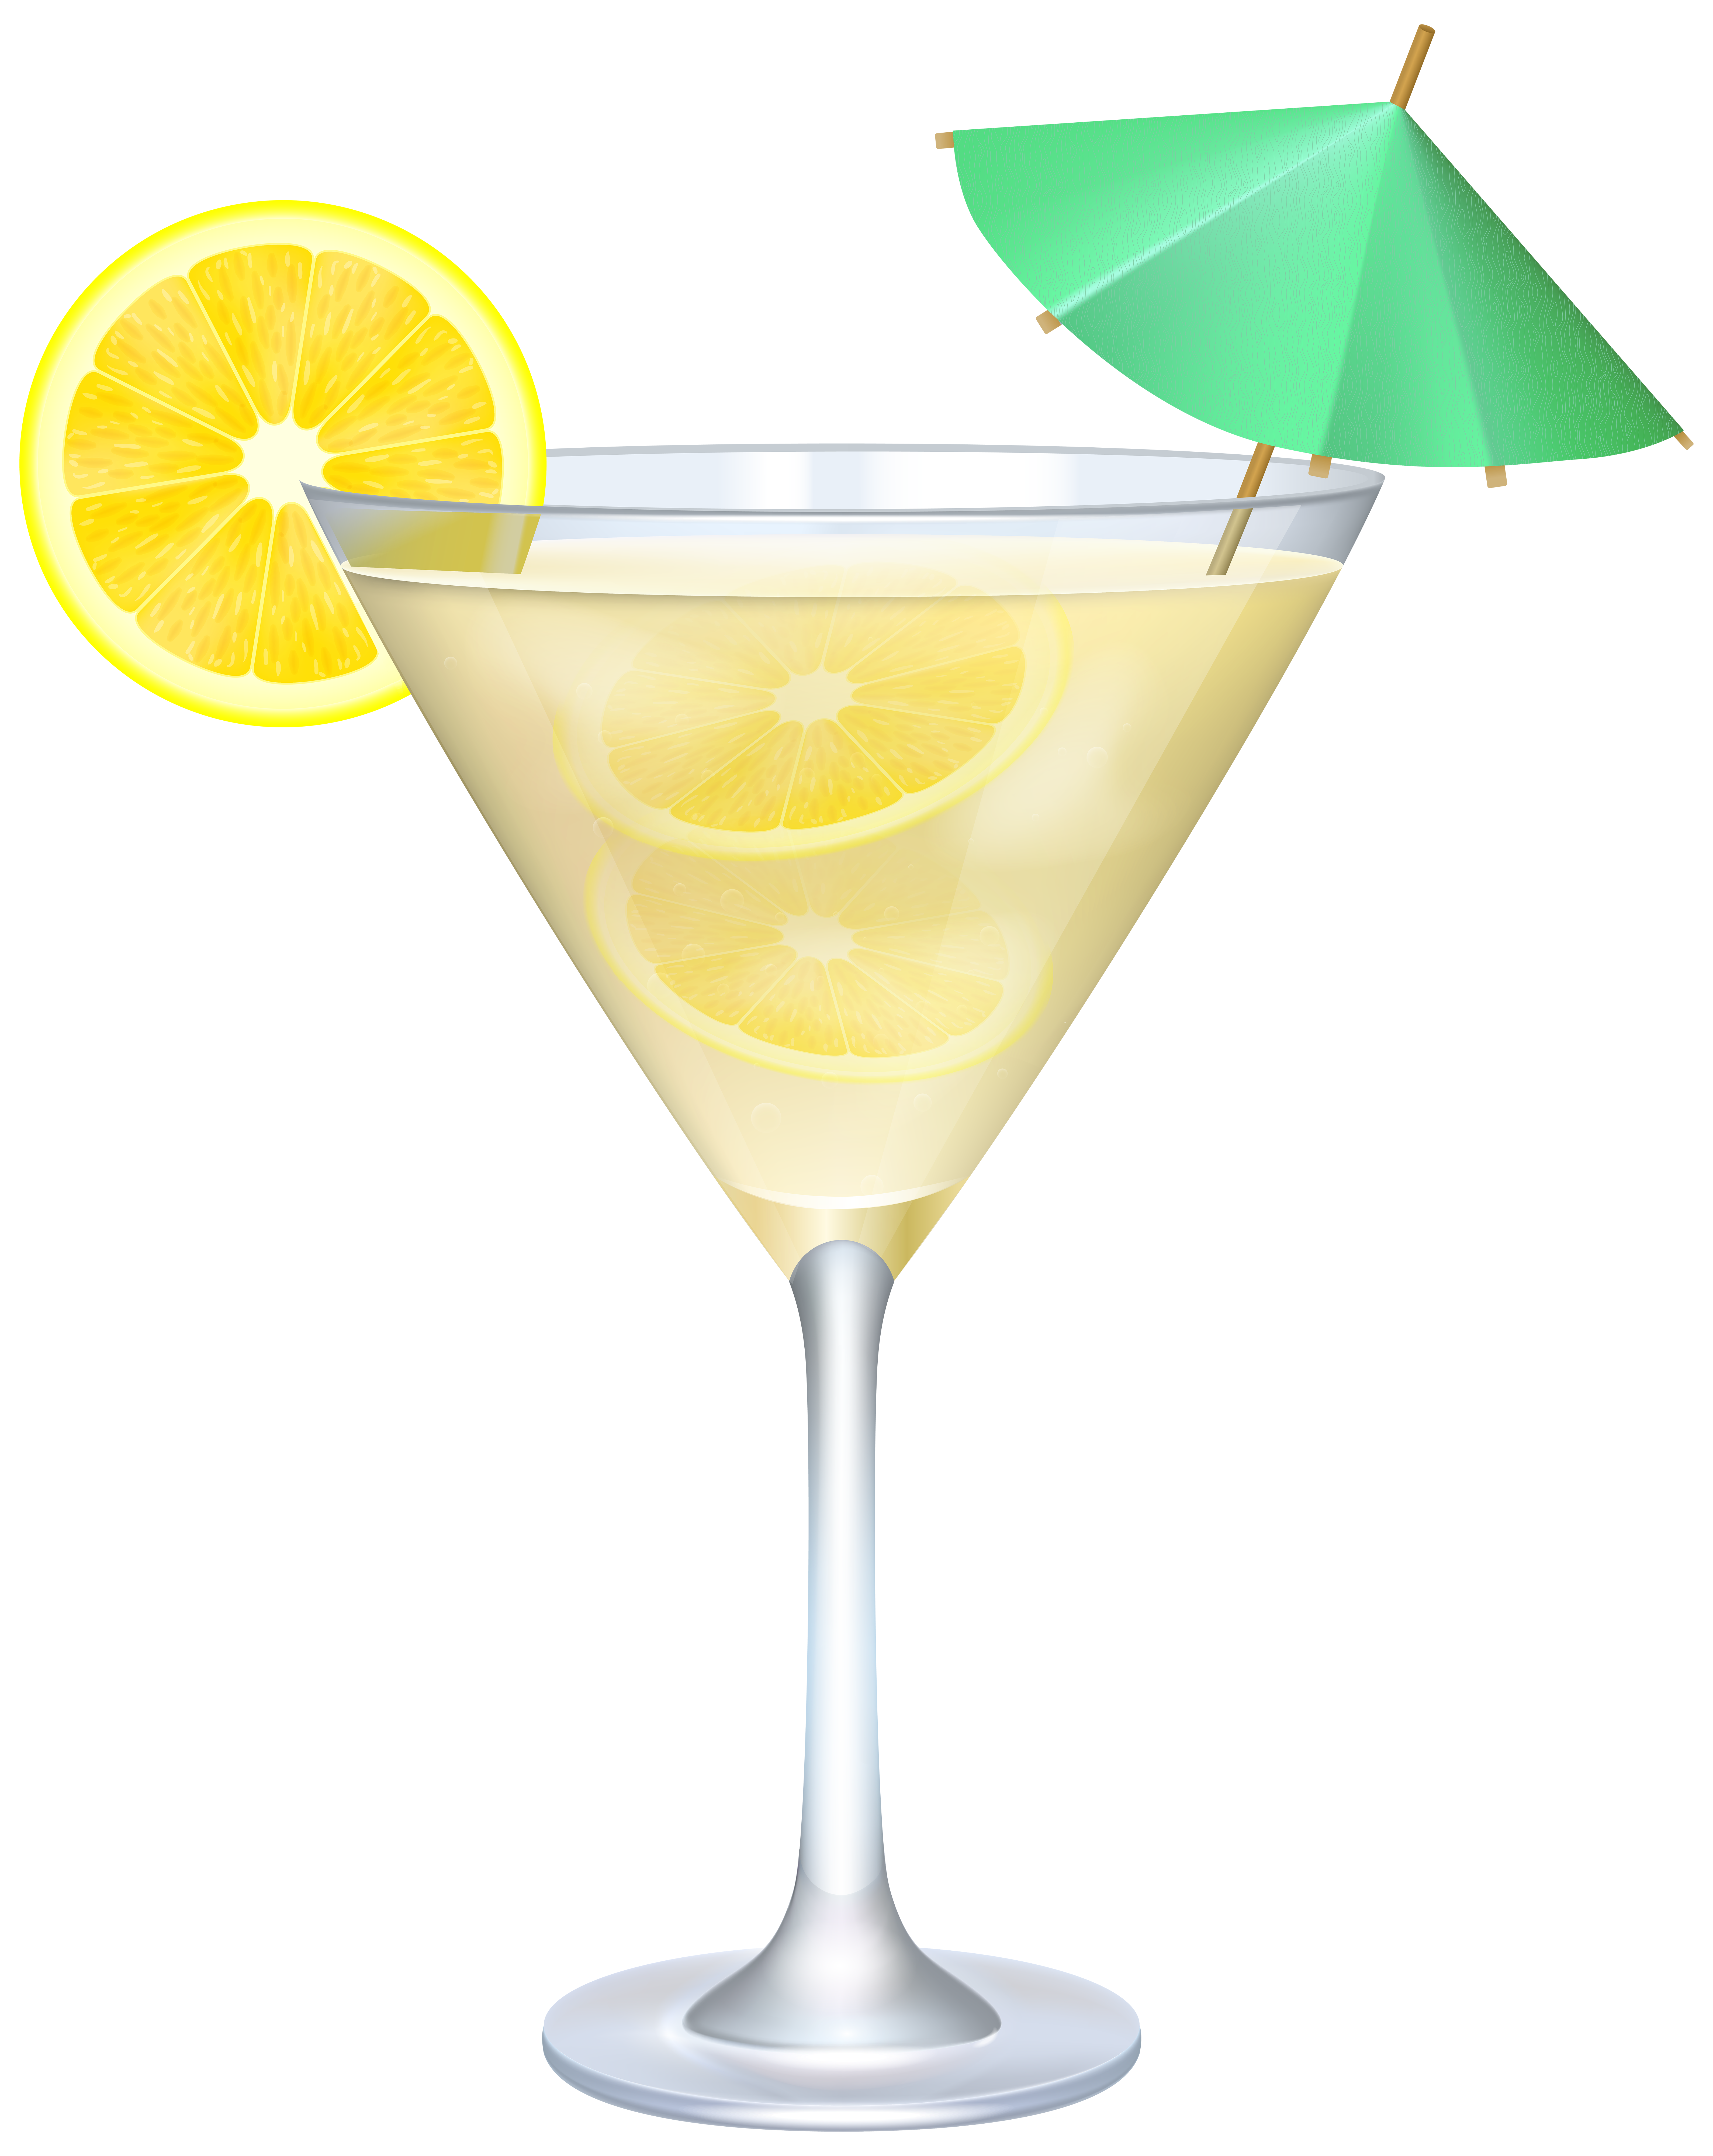 Evaporation clipart alcohol. Cocktail with lemon and